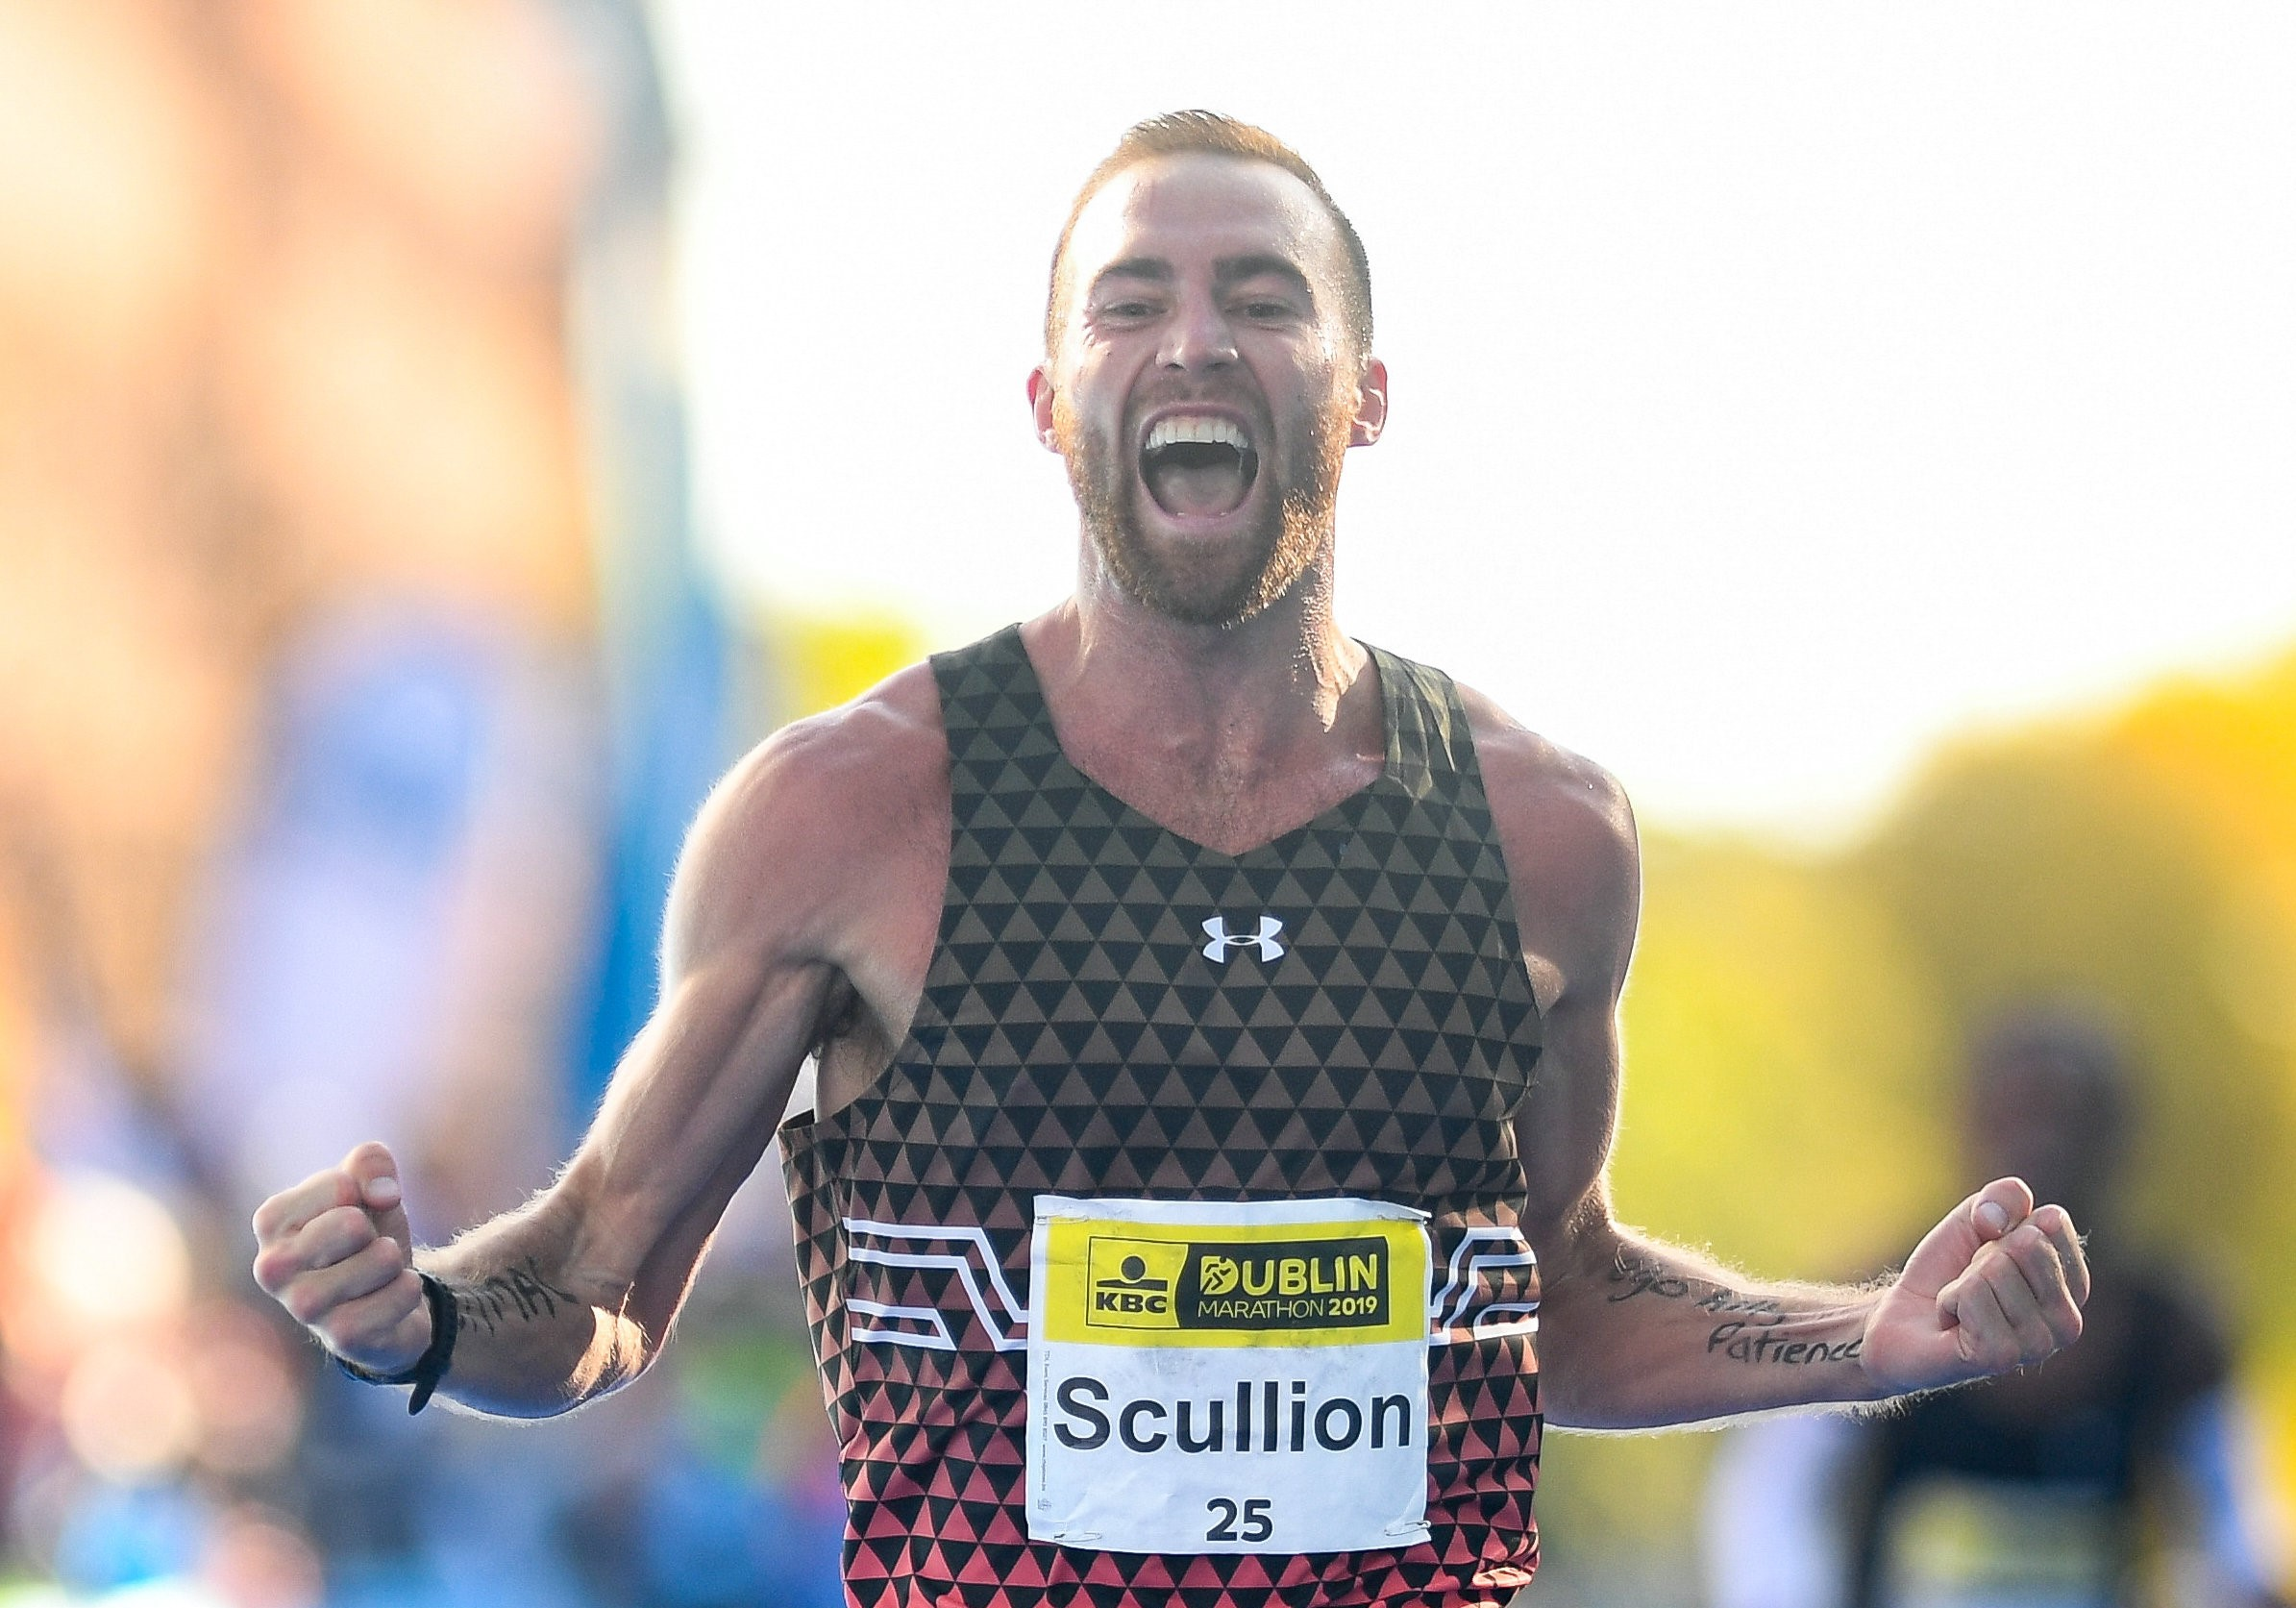 'Best day of my life' - Scullion stars in Dublin